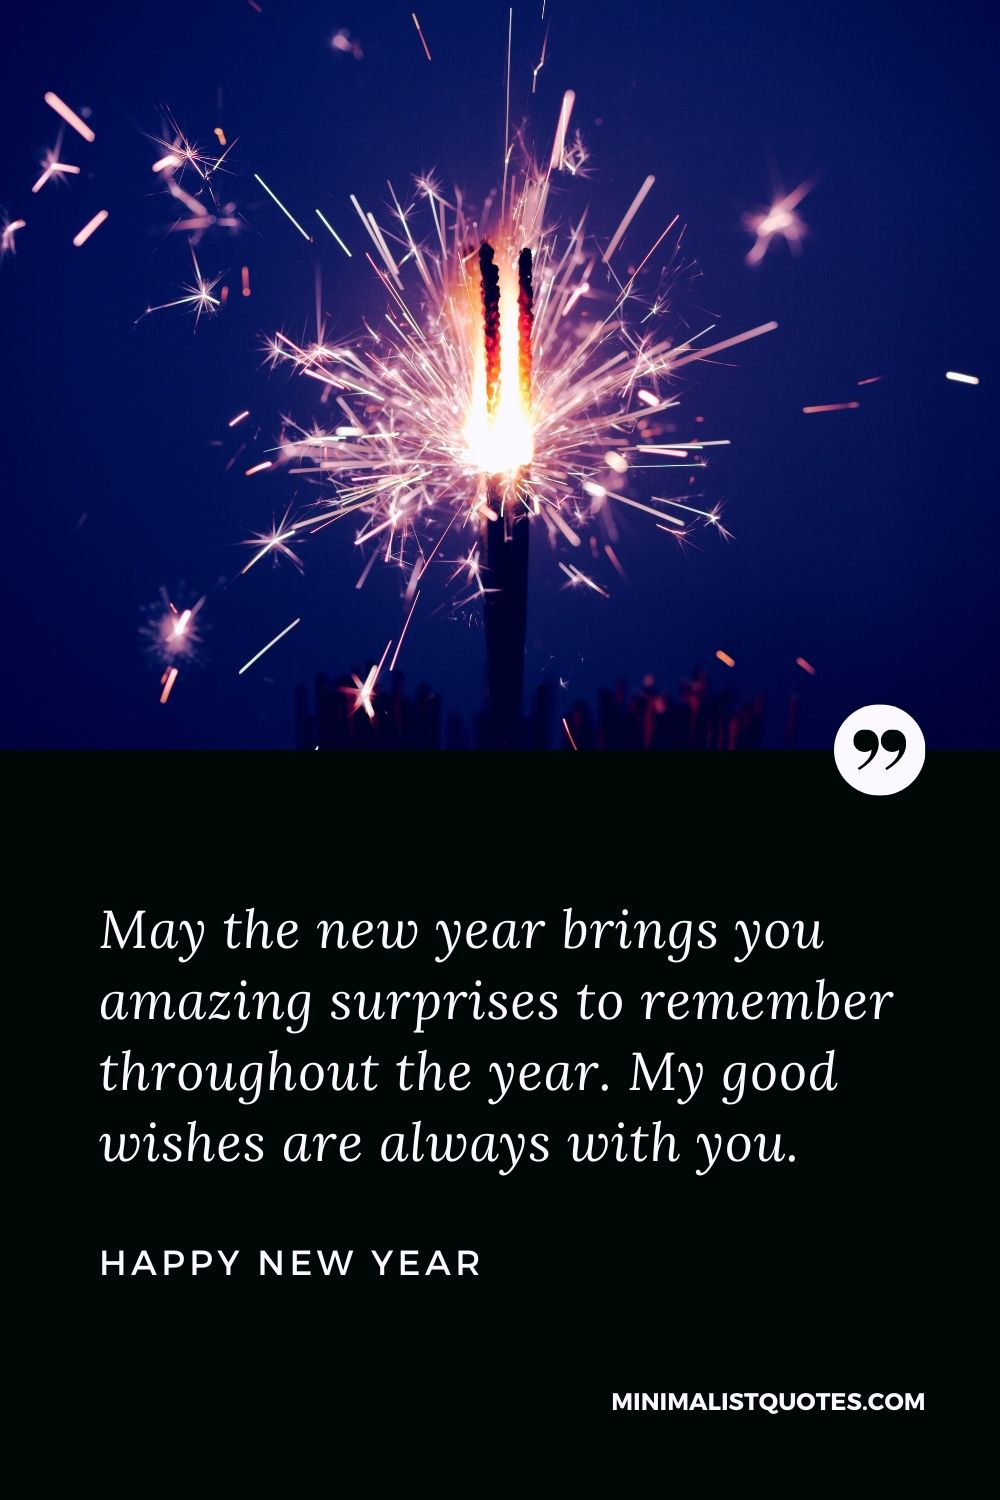 New Year Wish - May the new year brings you amazing surprises to remember throughout the year. My good wishes are always with you.